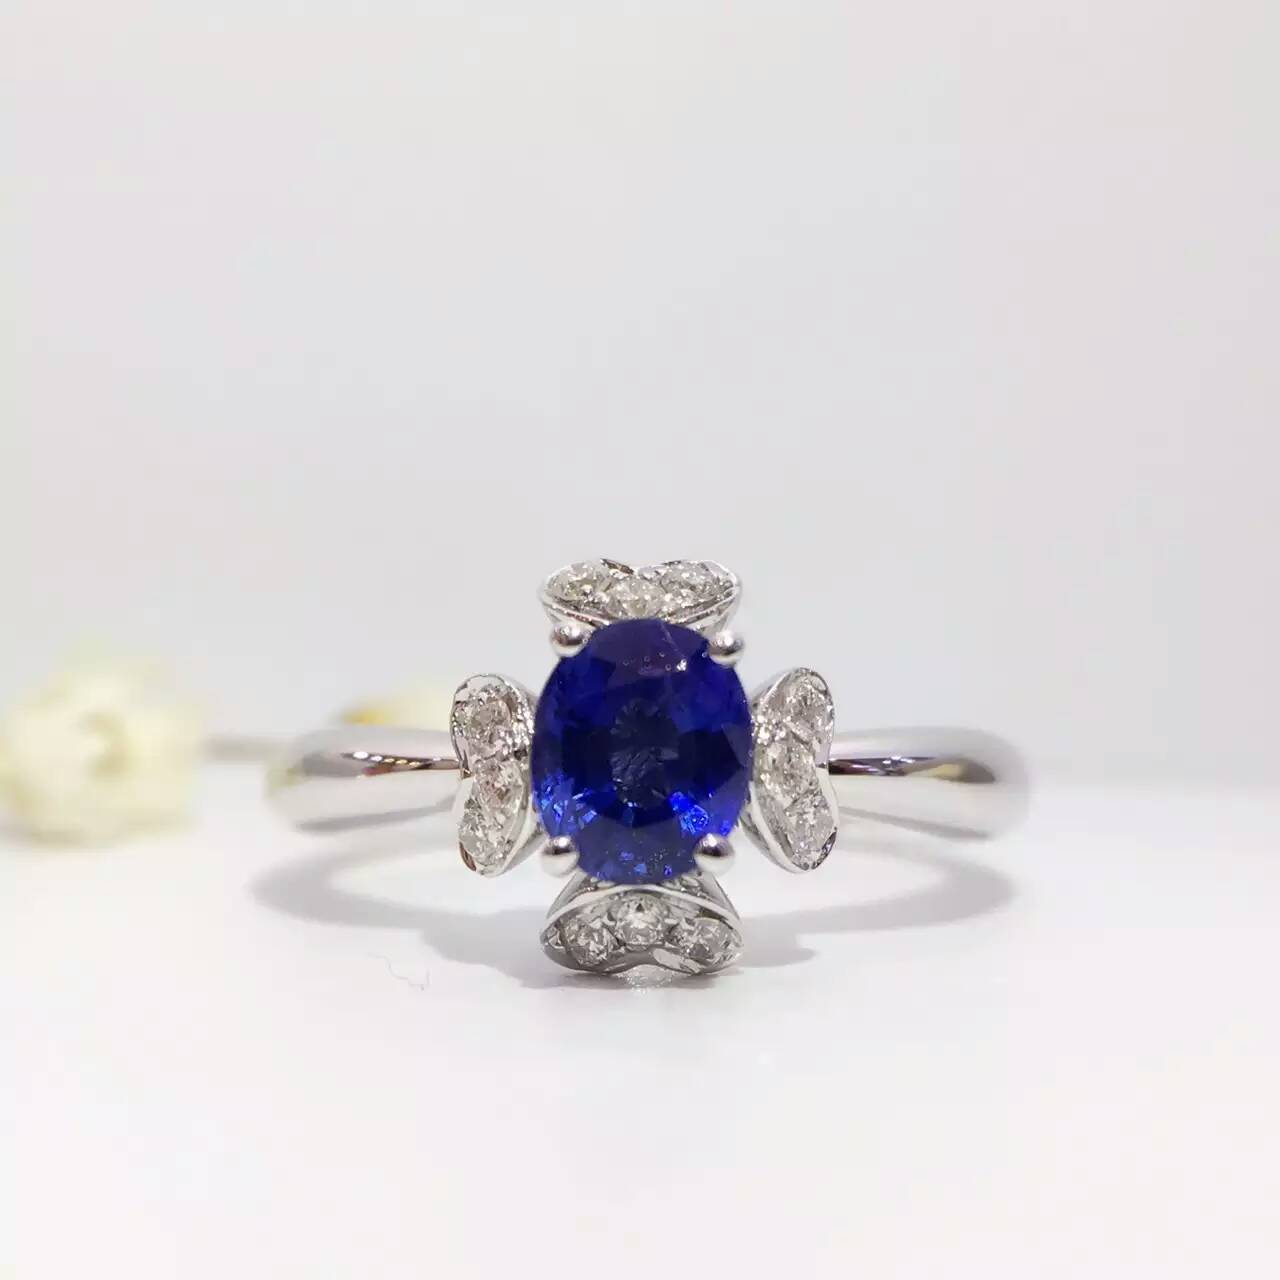 0.881ct+0.124ct 18K Gold Natural Sapphire Women Ring with Diamond Setting 2016 New Fine Jewelry Wedding Band Engagement